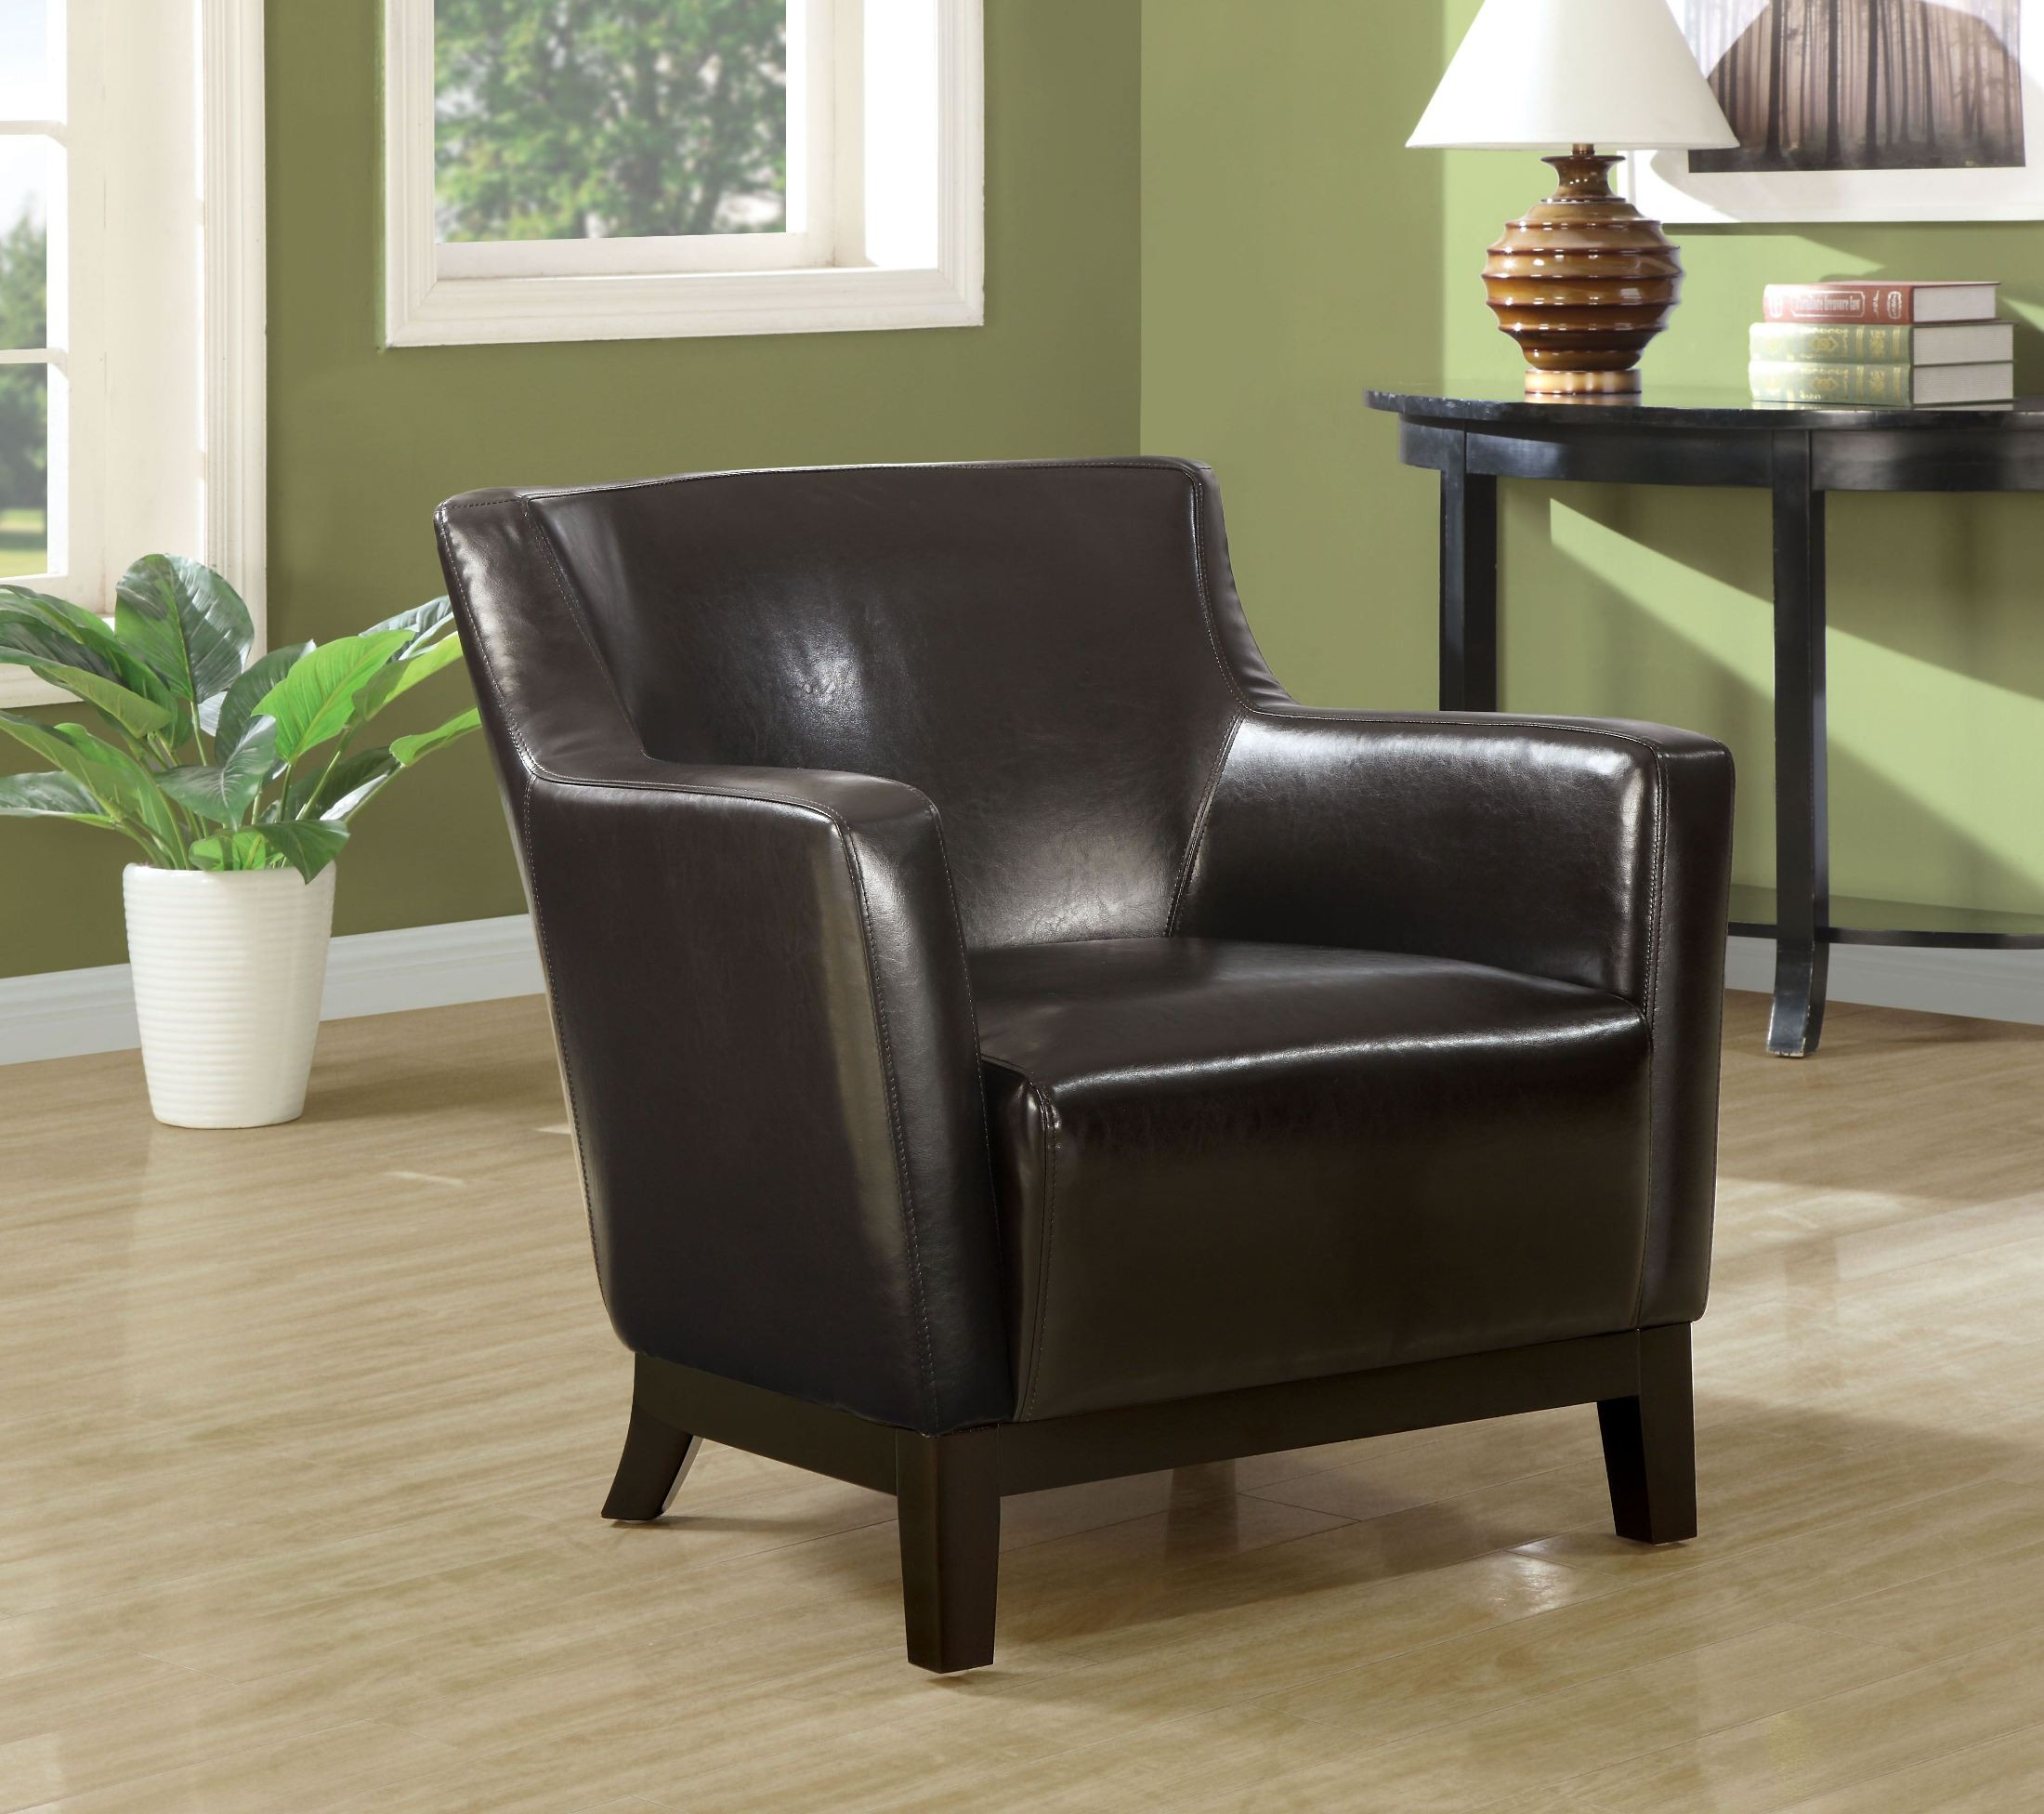 Brown Accent Chairs Dark Brown Wood Legs Accent Chair From Monarch 8035